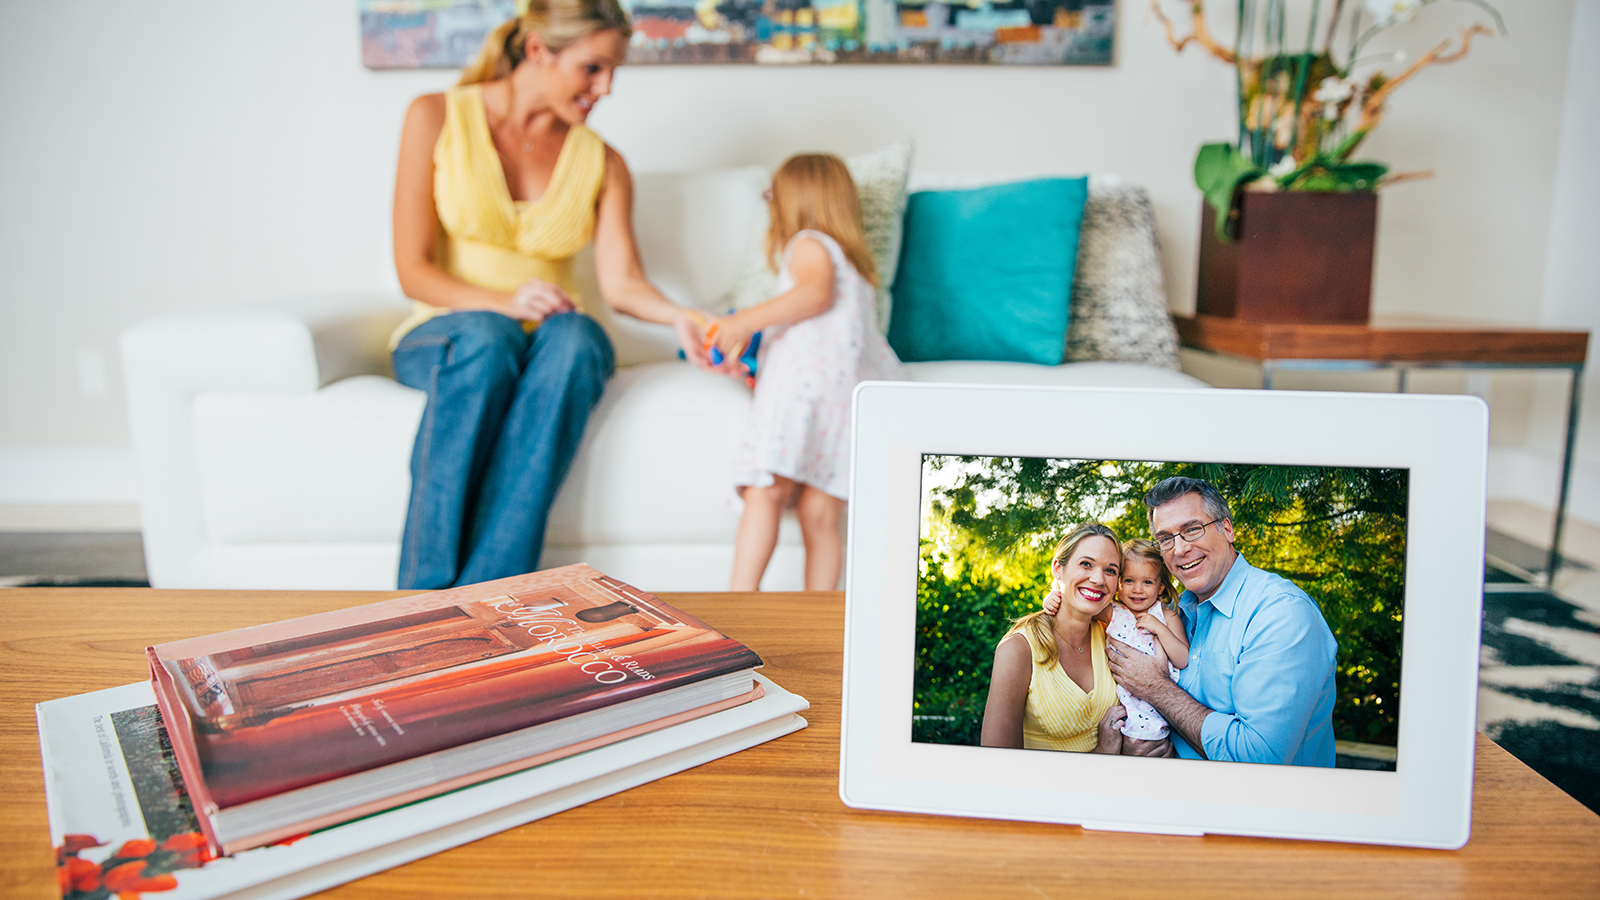 PhotoSpring Announces a Mother's Day Gift that Lets Mom